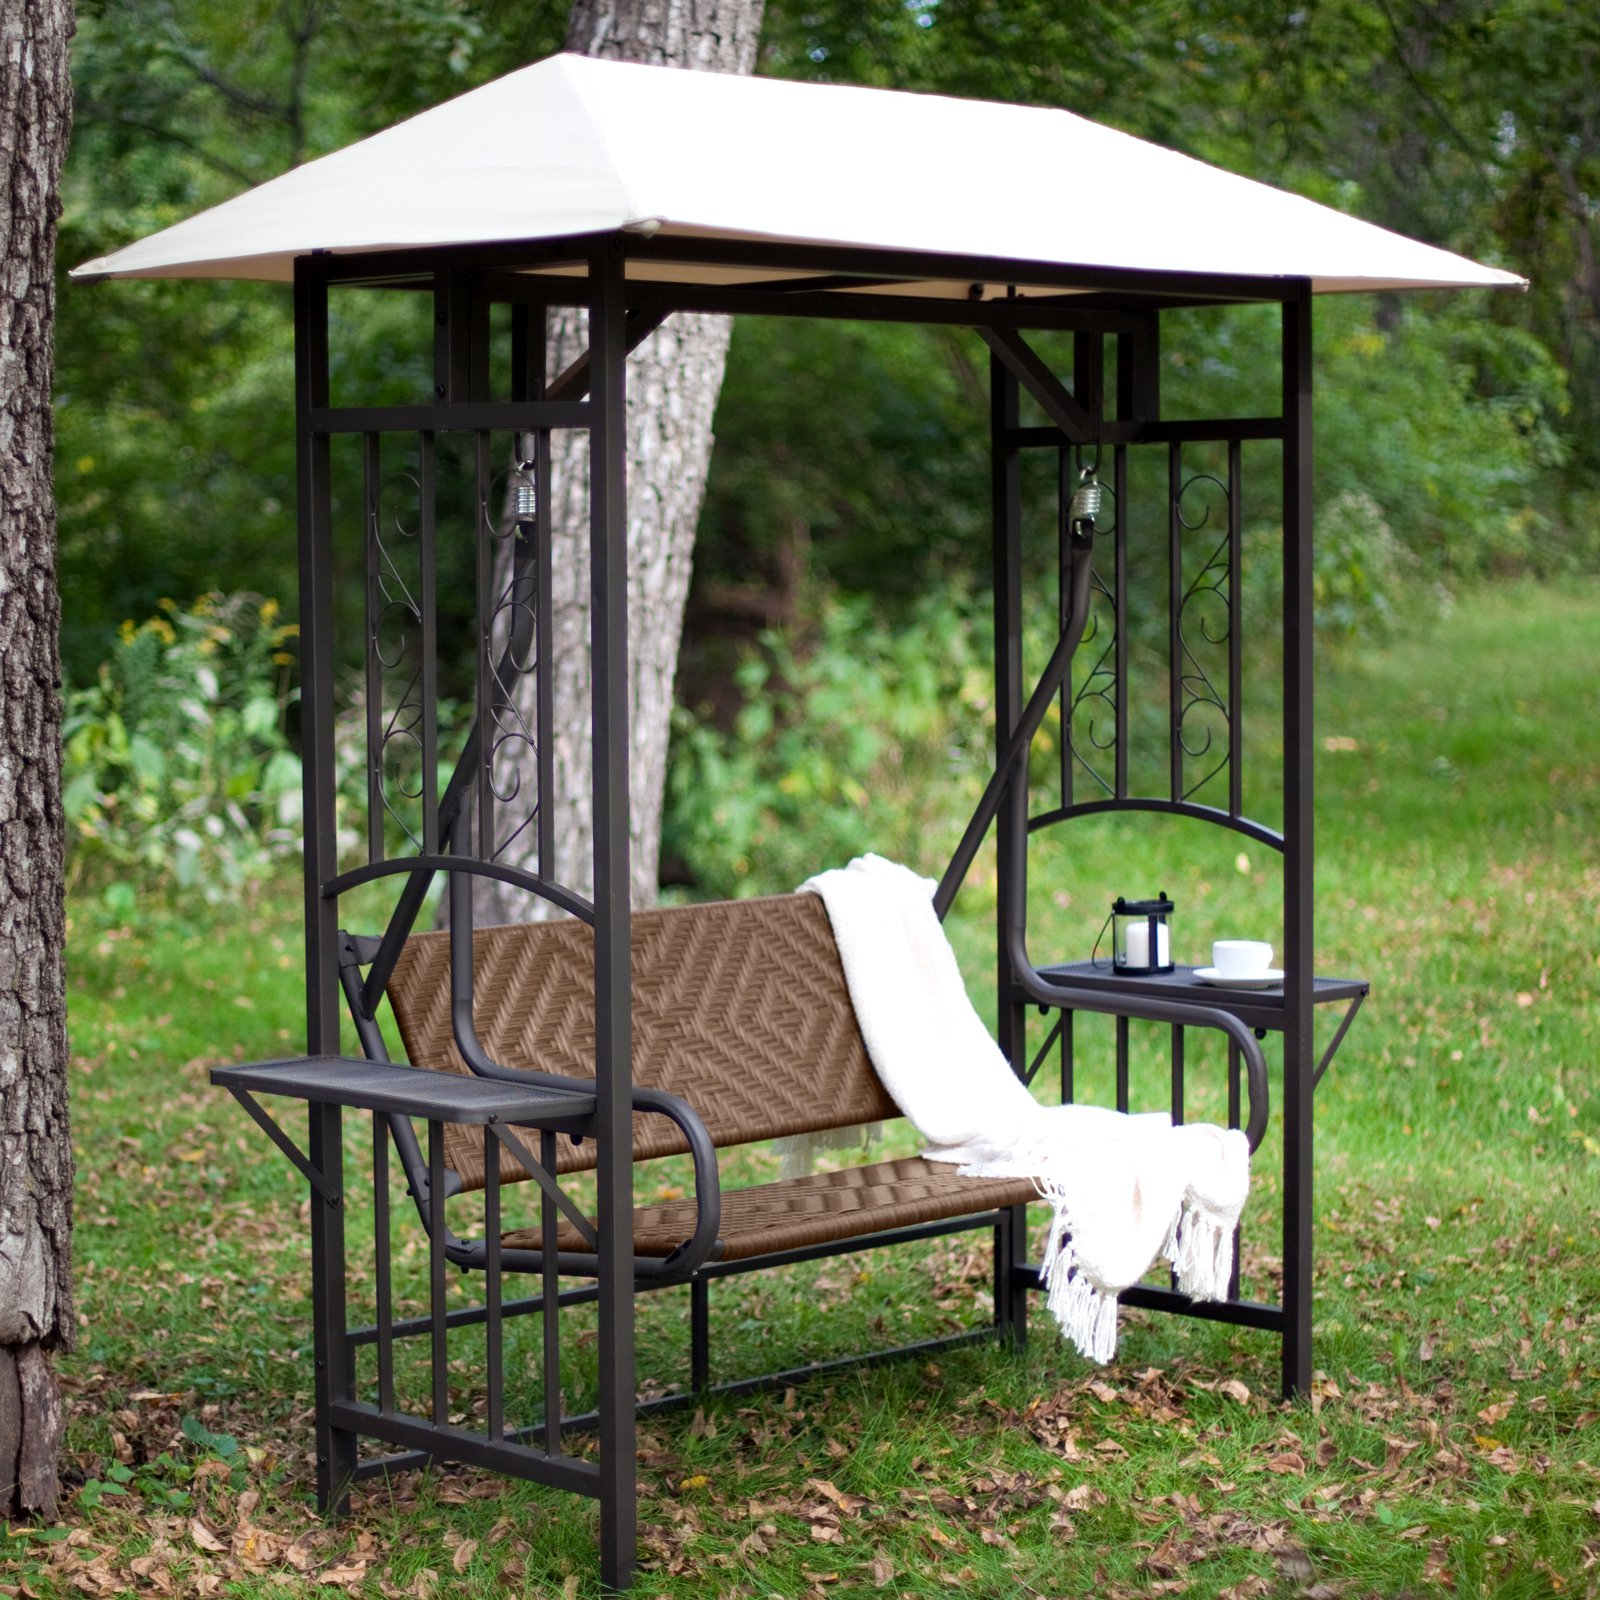 Decor: Enjoyable Your Outdoor Exterior With Fascinating Pertaining To 2 Person Antique Black Iron Outdoor Swings (View 9 of 25)